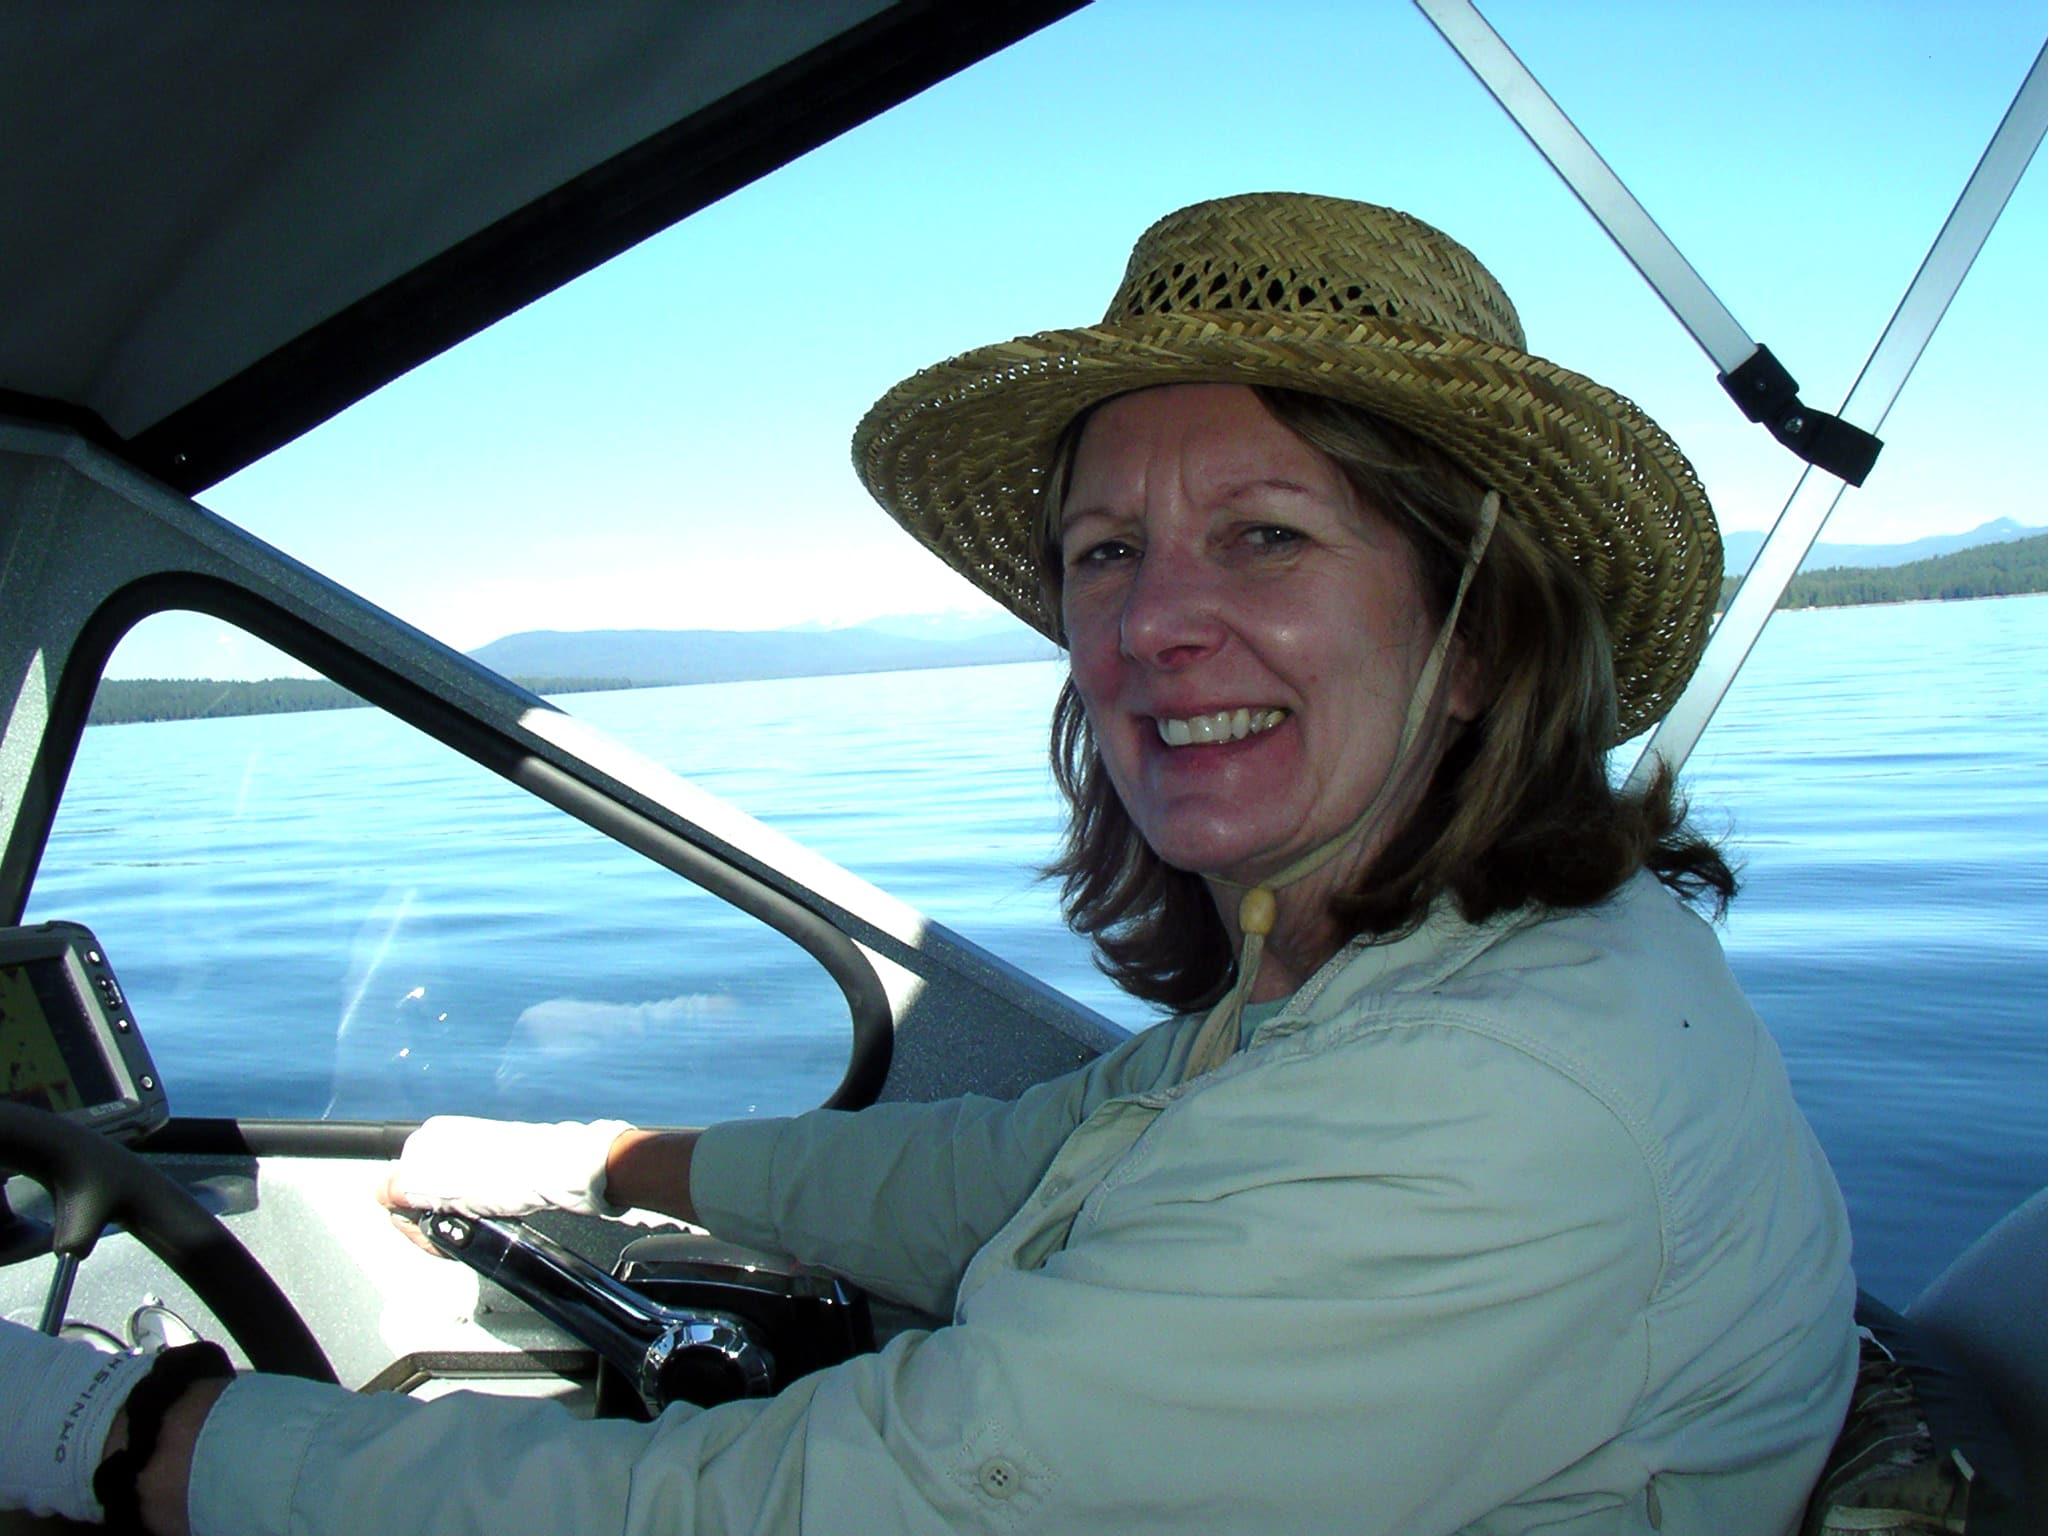 Libby Guthrie at the Wheel